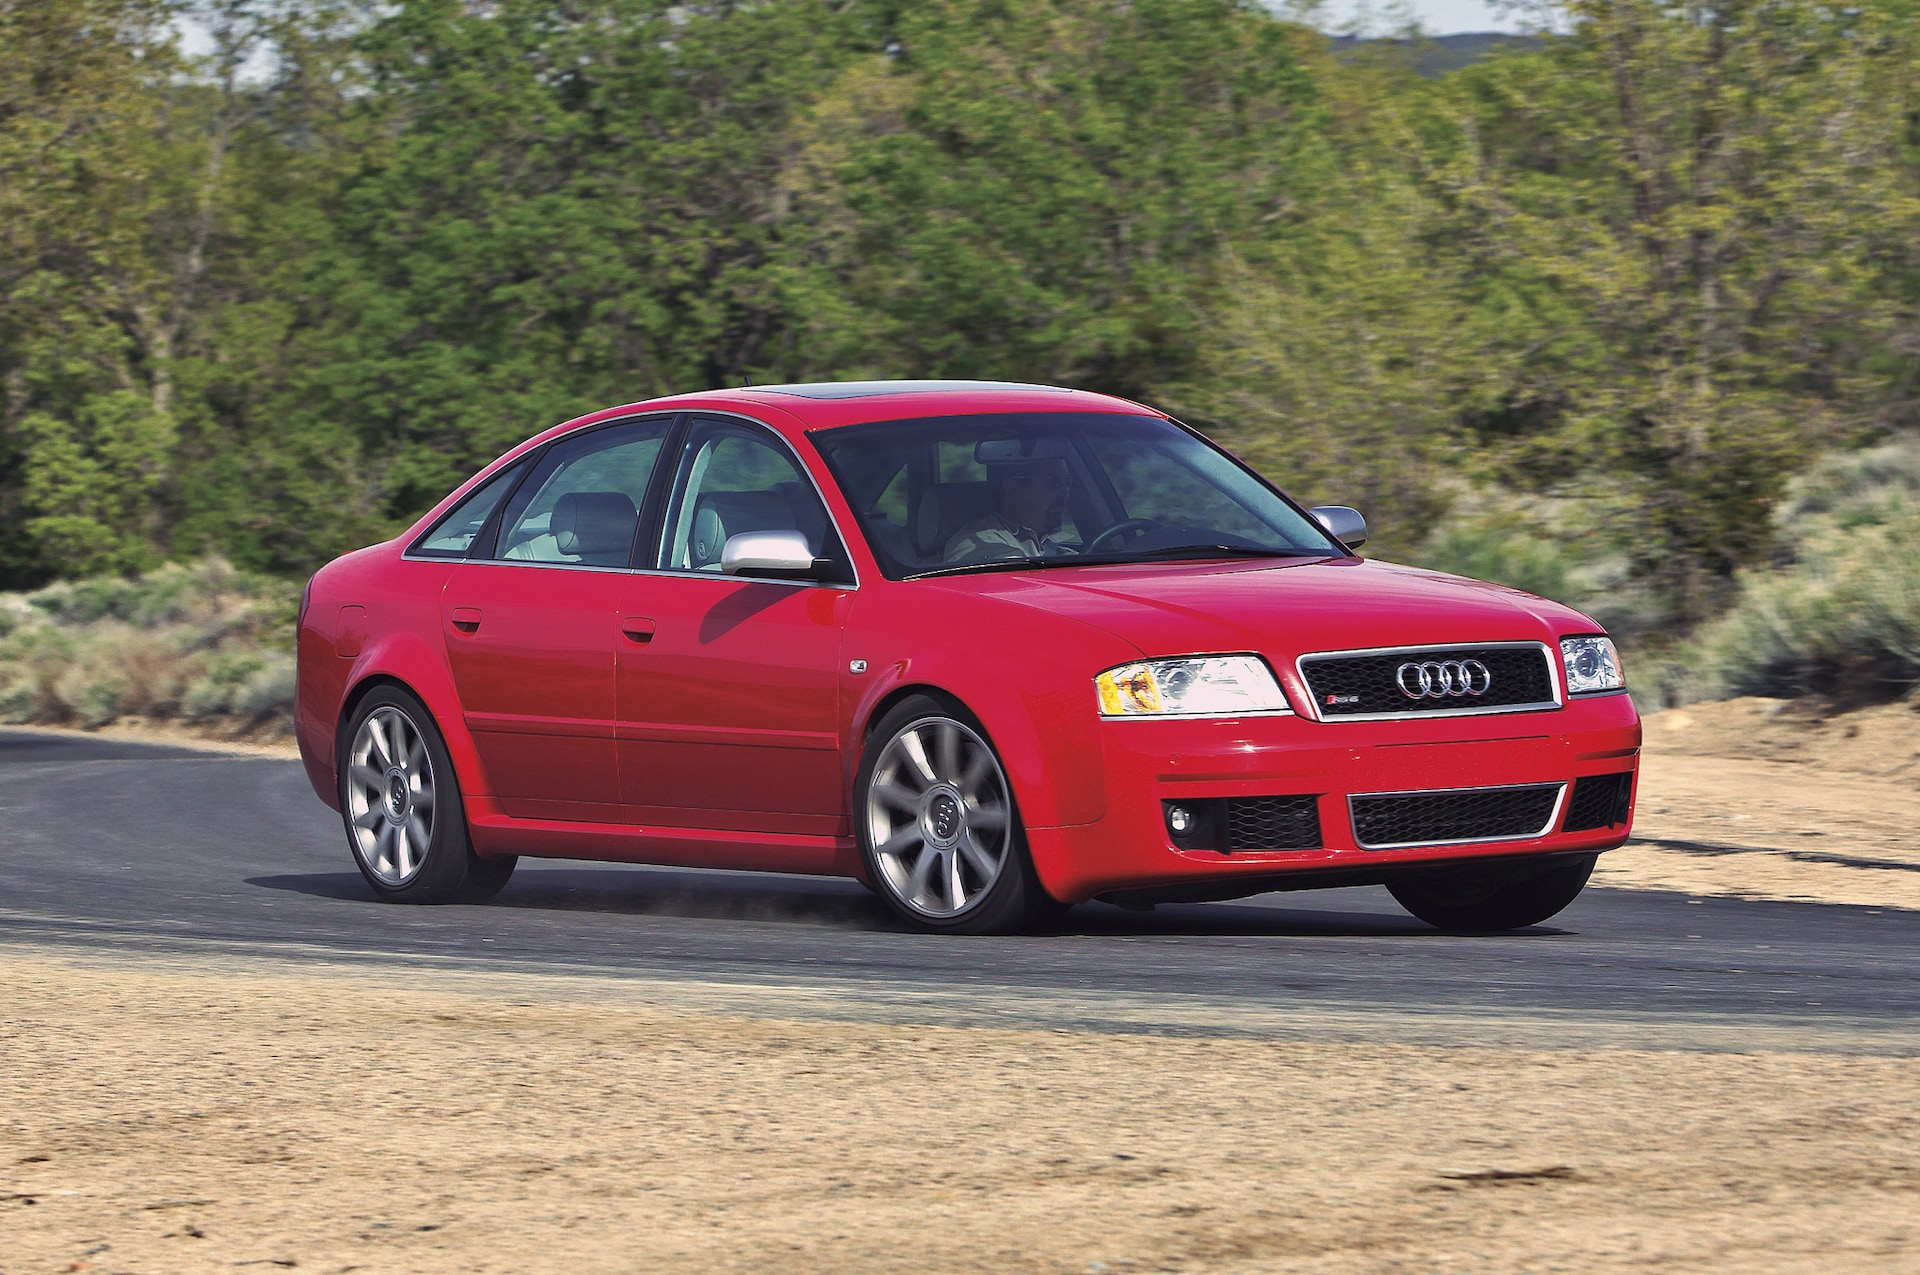 2003 Audi RS 6 front three quarter in motion